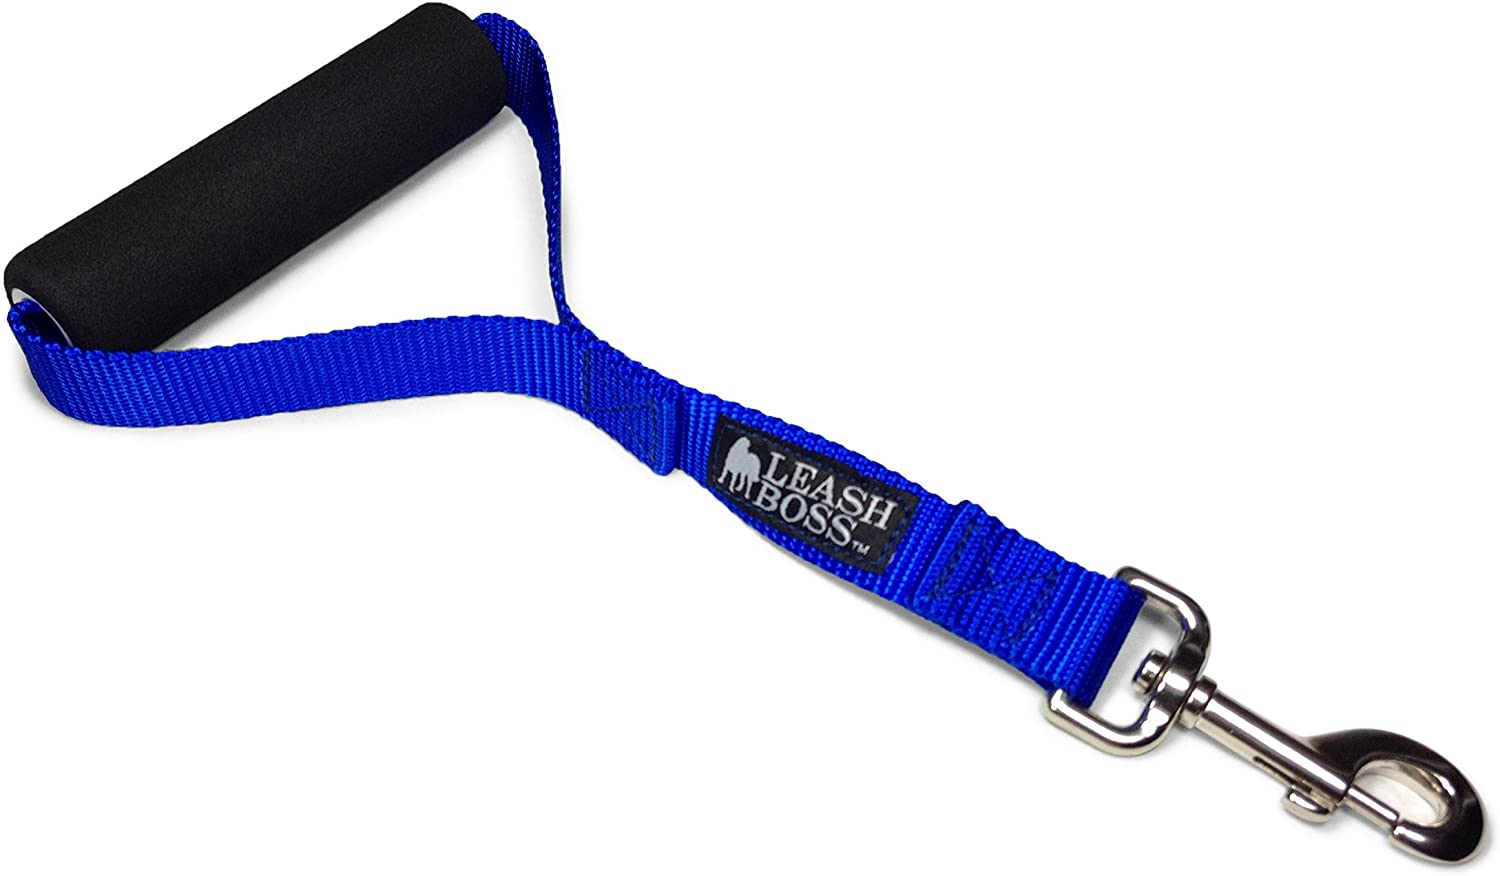 Leashboss Traffic Handler - Short Dog Leash with Traffic Handle for Large Dogs for Double Dog Couplers, Service Dogs, and Training